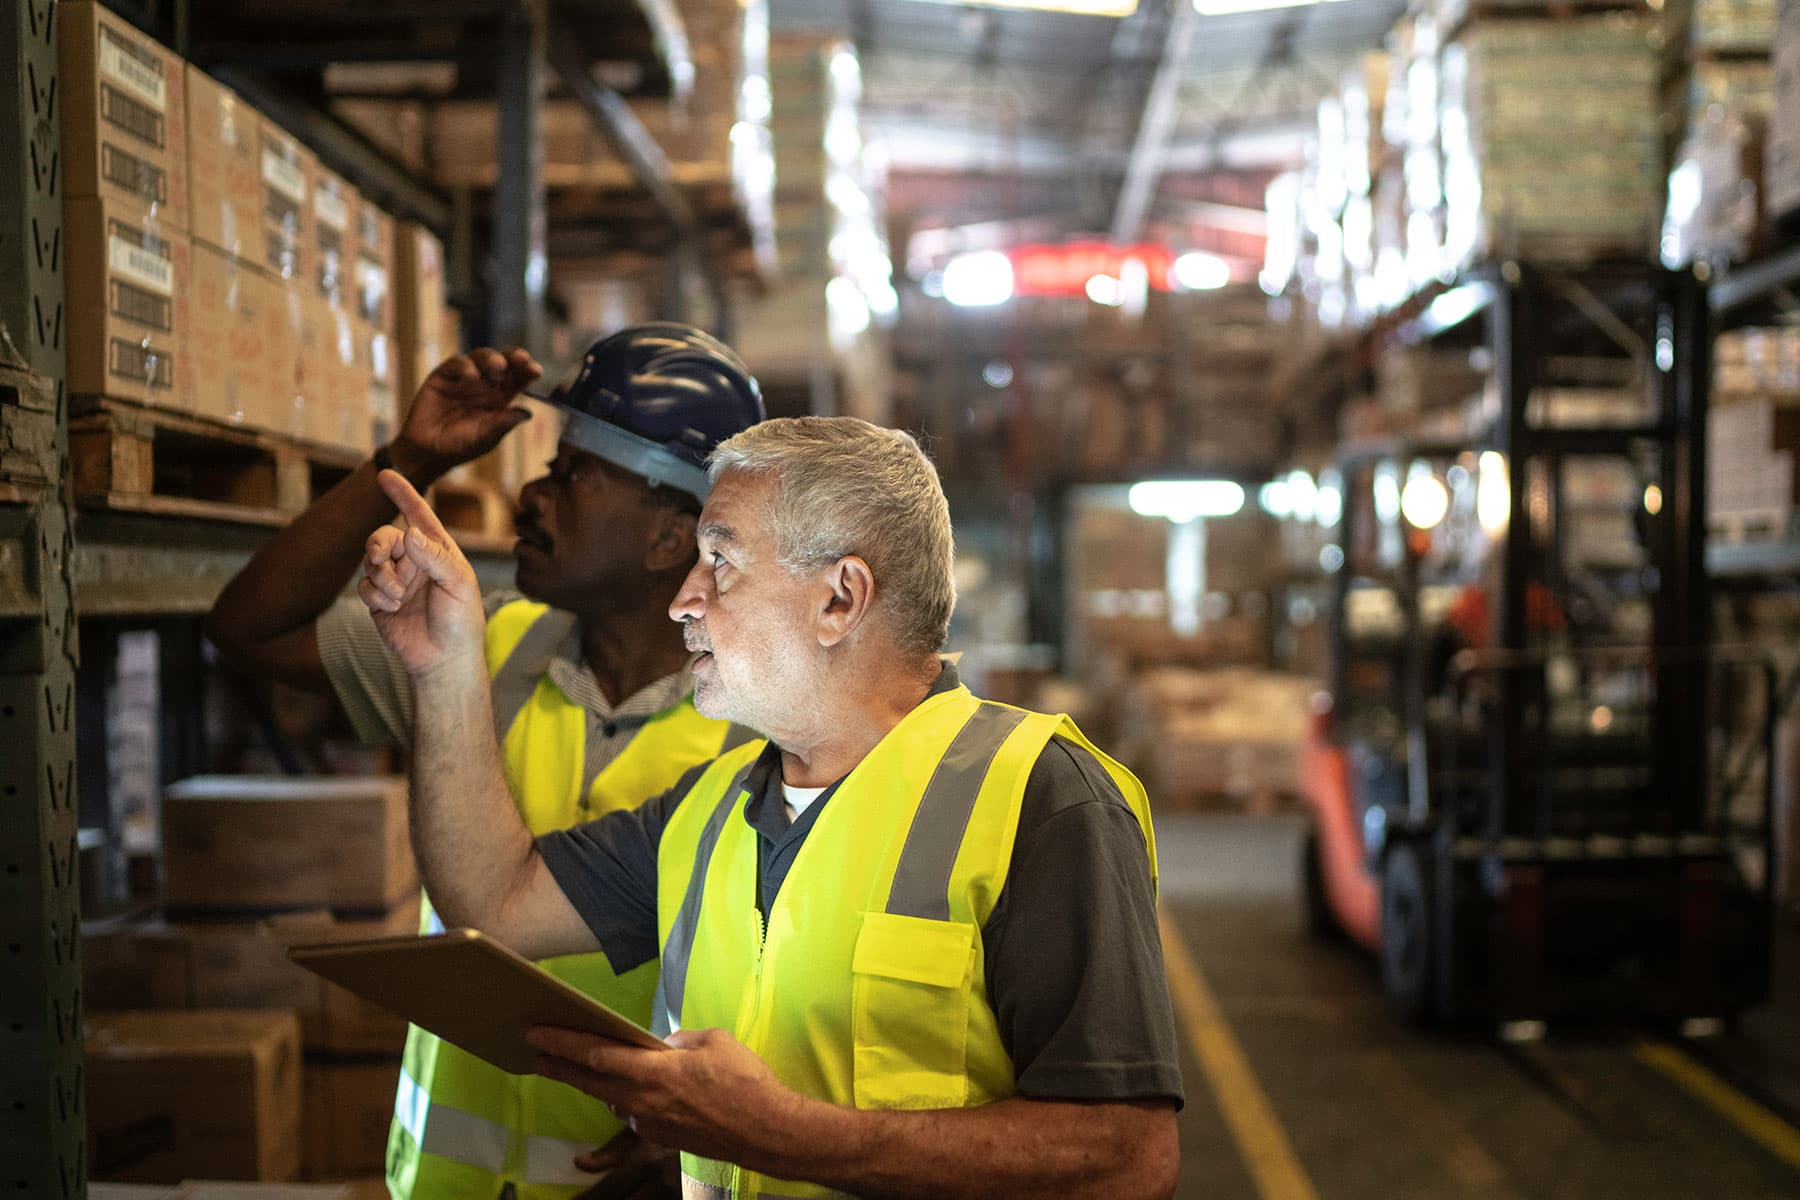 Two men working in a warehouse.